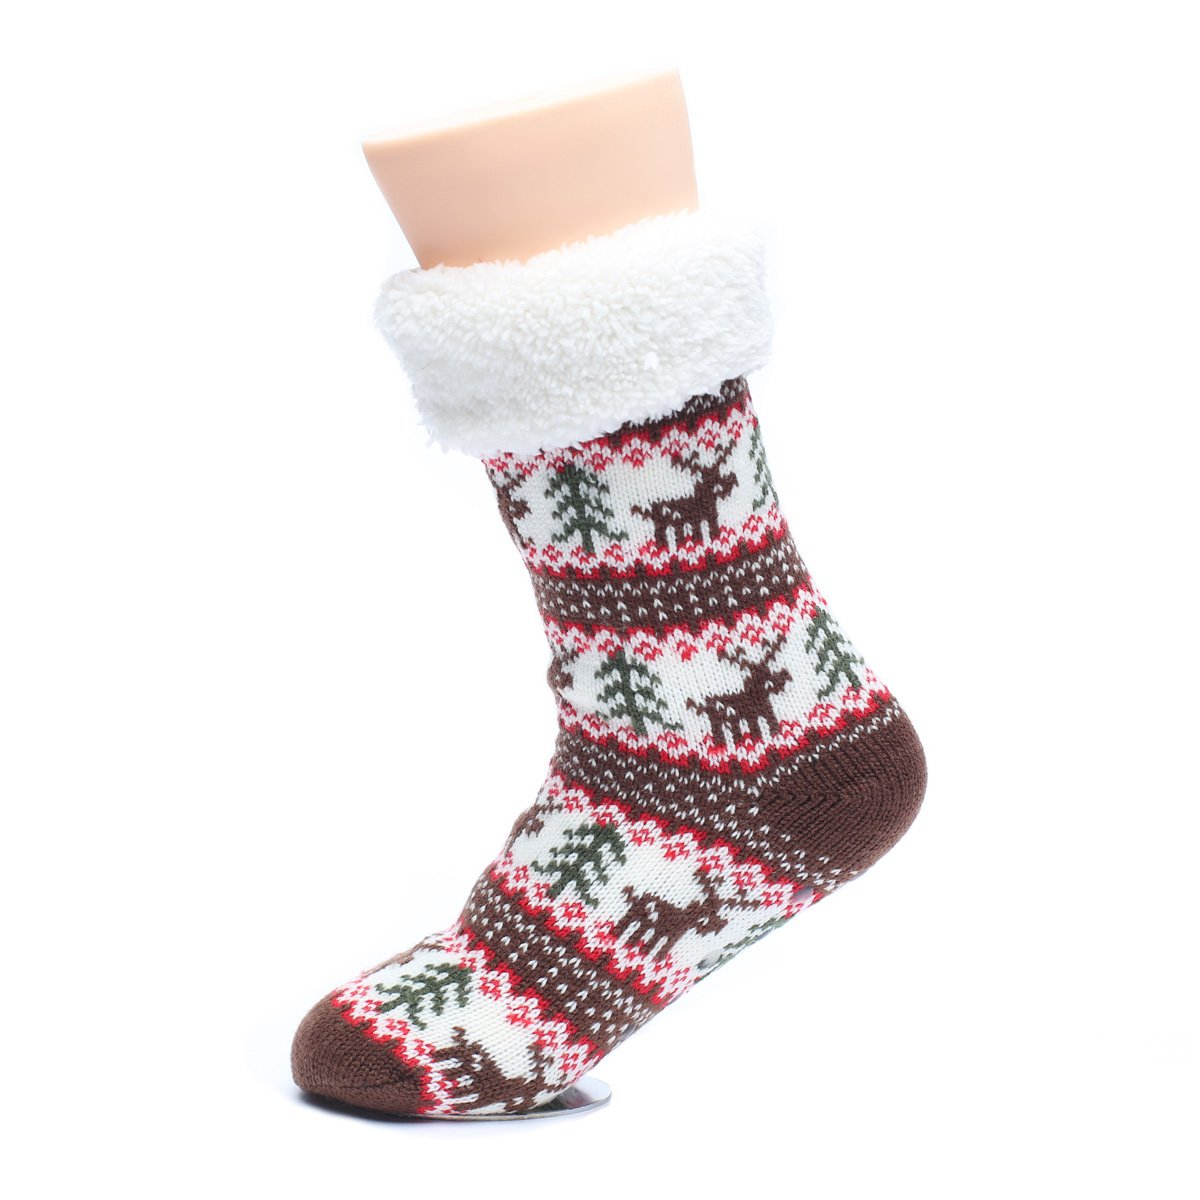 b62f8c62abba8 Ofoot Womens Winter Thermal House Slipper Socks, Fuzzy Fleece-Lined Knitted  Christmas Stockings, Non- Skid Sole at Amazon Women's Clothing store: